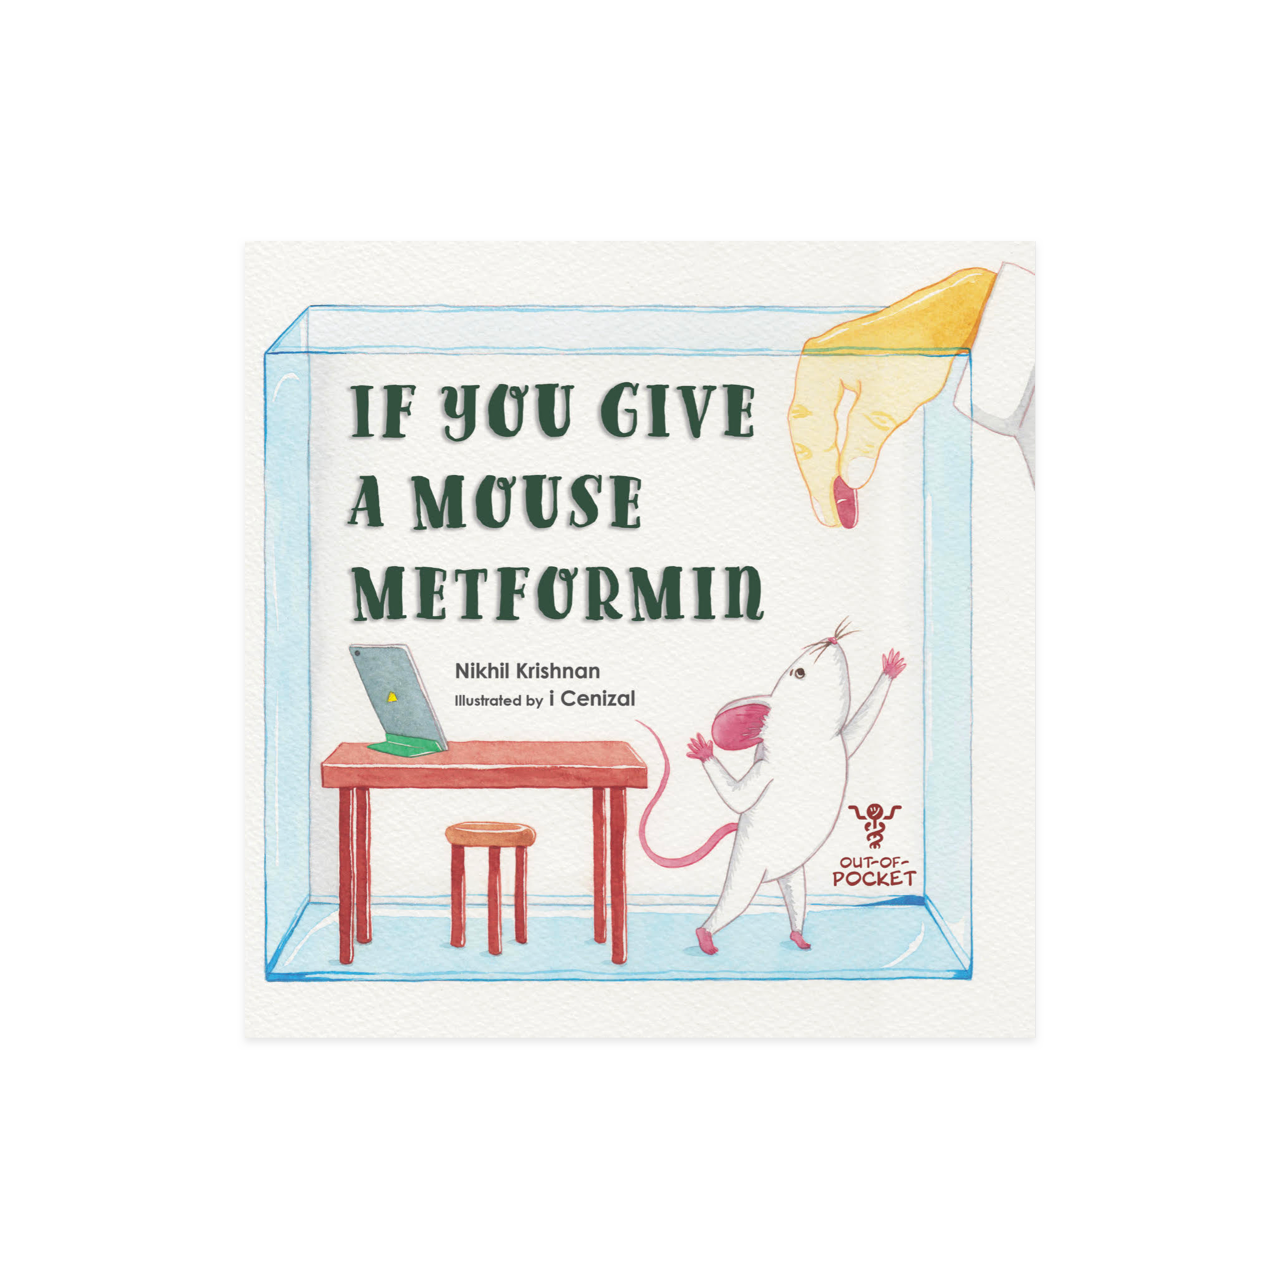 If You Give A Mouse Metformin